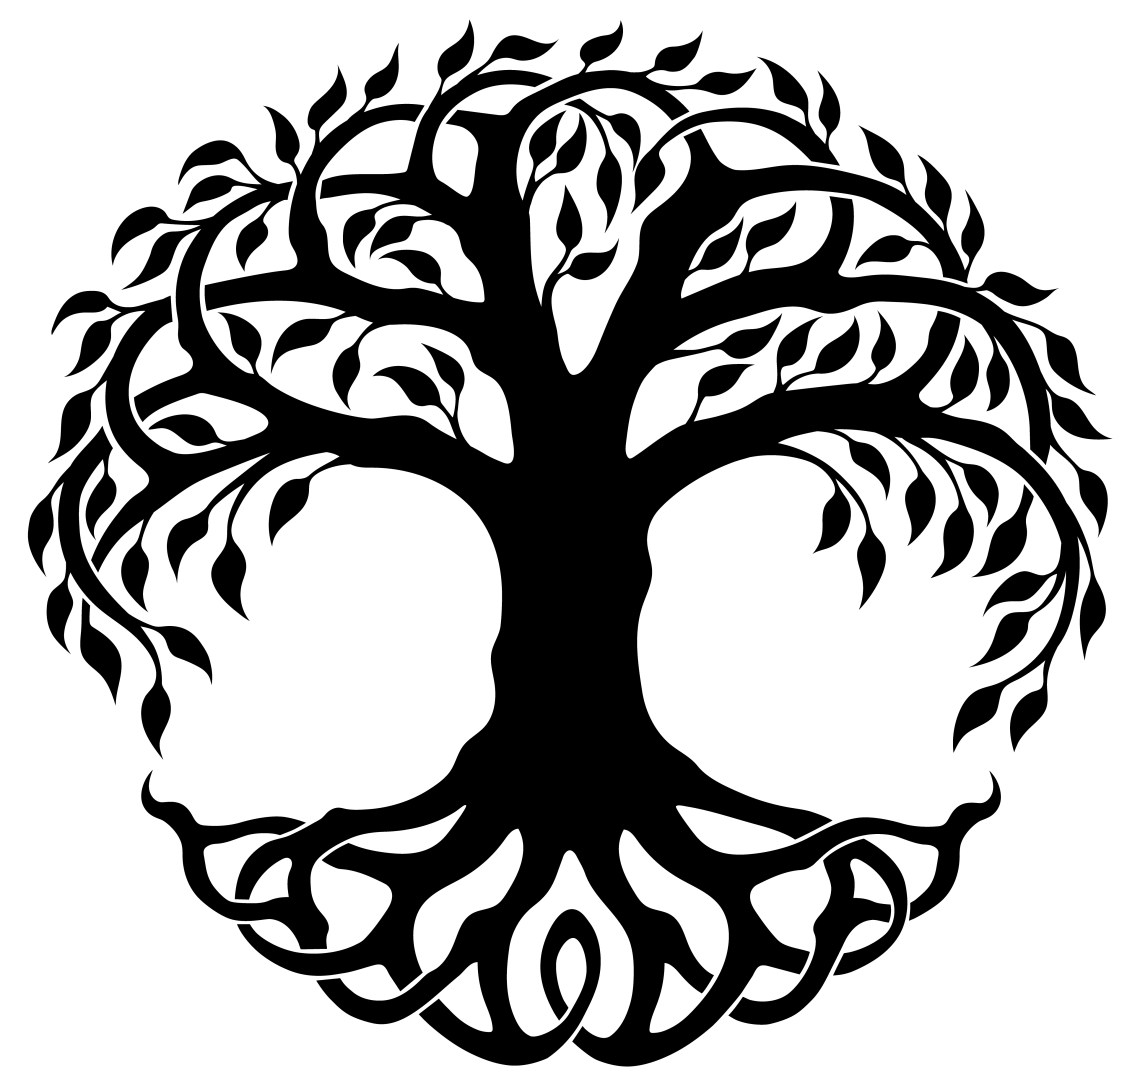 Representation of the Tree of Life.